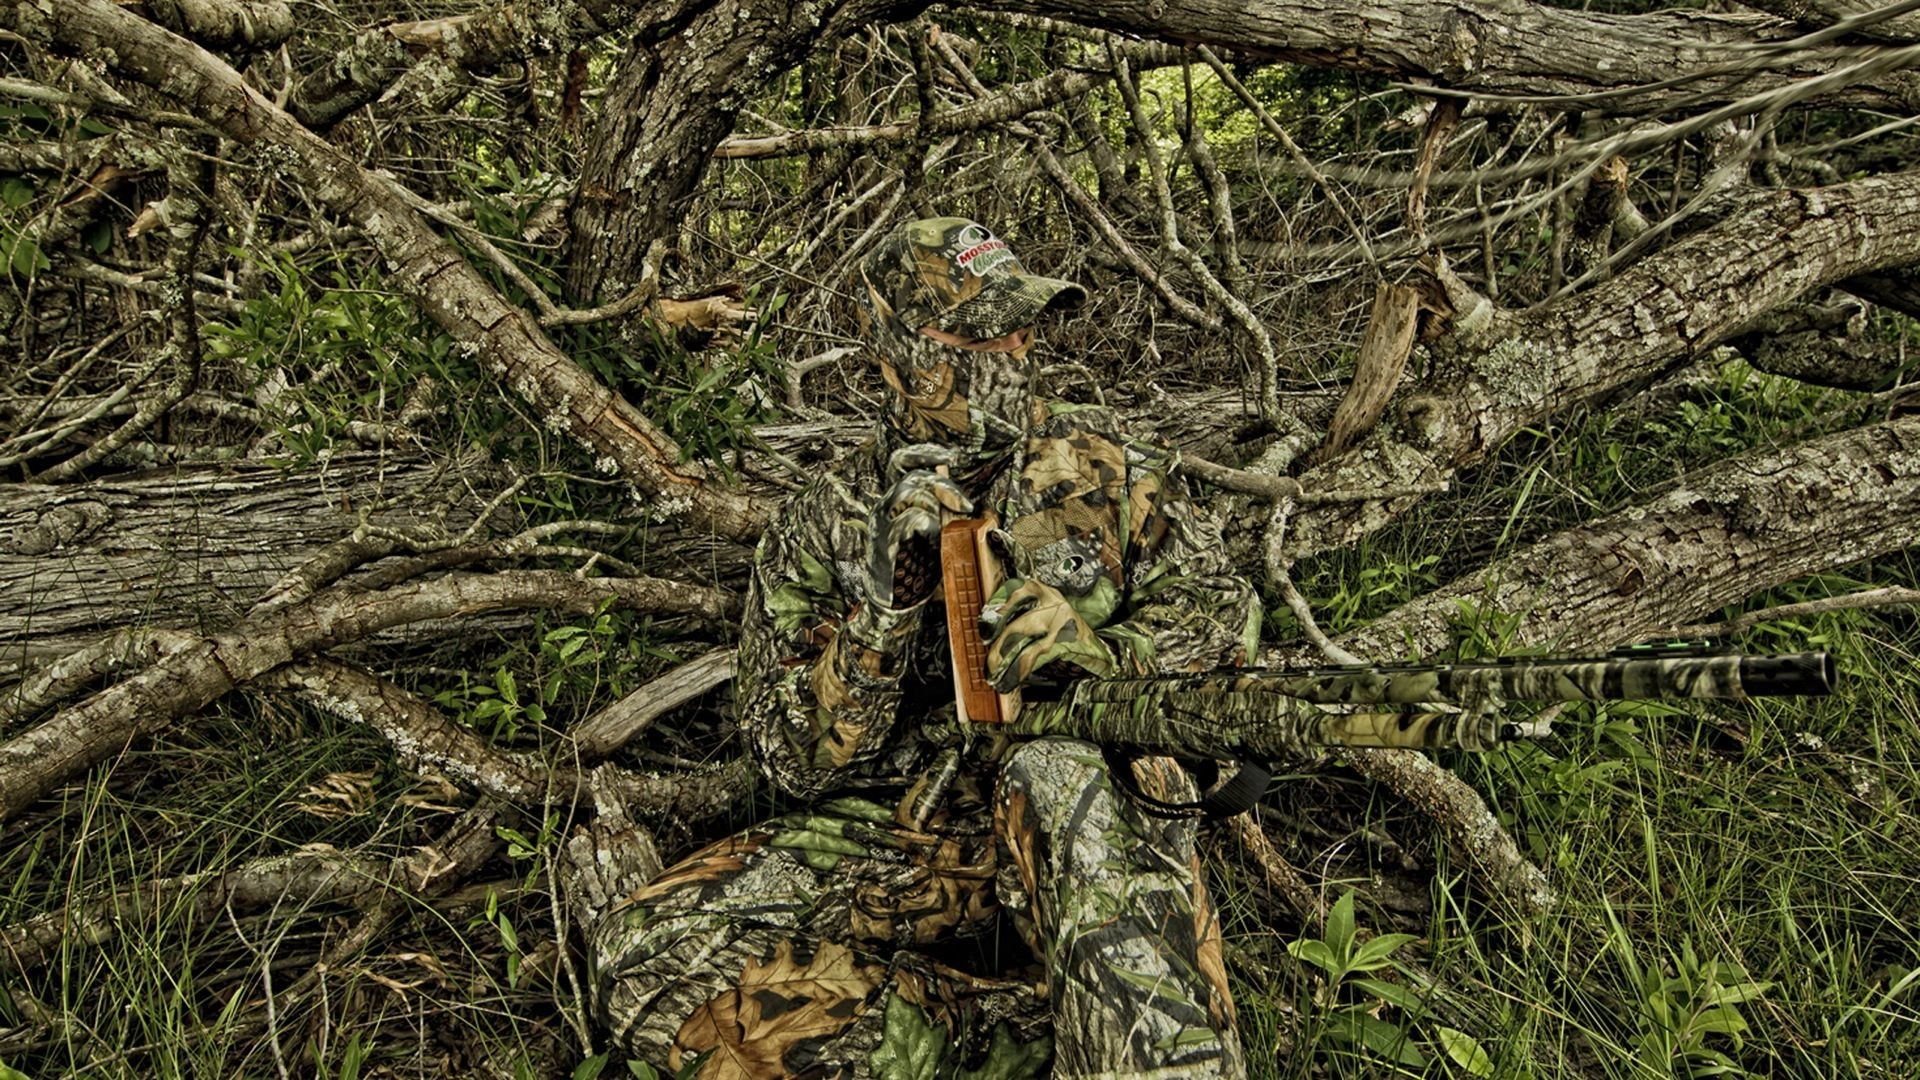 Country Girl Wallpapers With Camo Camouflage Wallpapers 67 Images